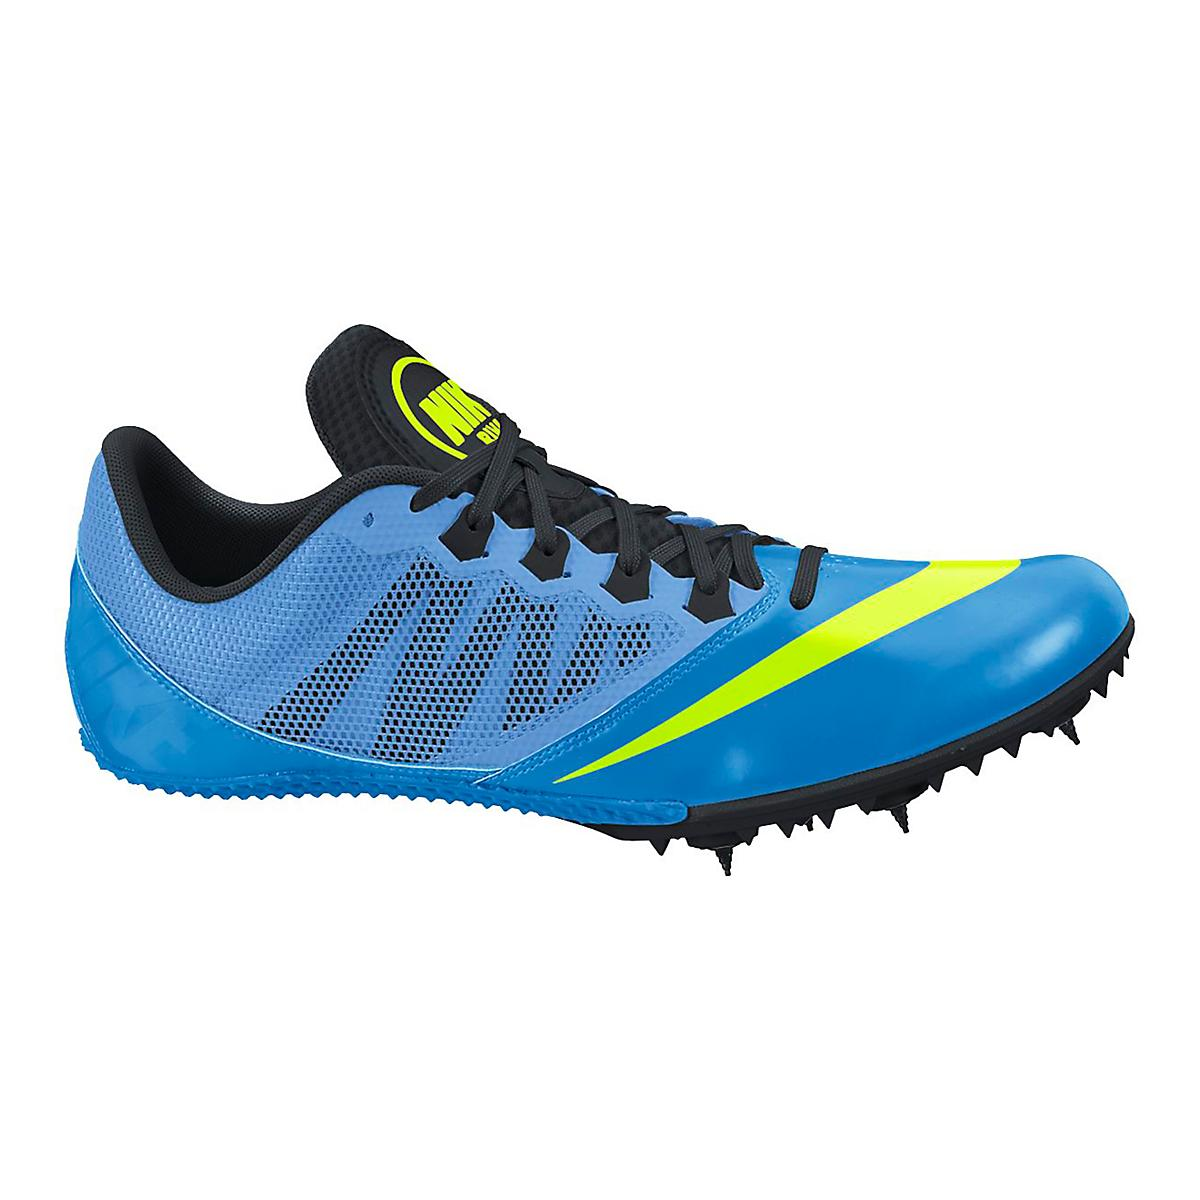 buy online 4528d ae0a3 Mens Nike Zoom Rival S 7 Track and Field Shoe at Road Runner Sports